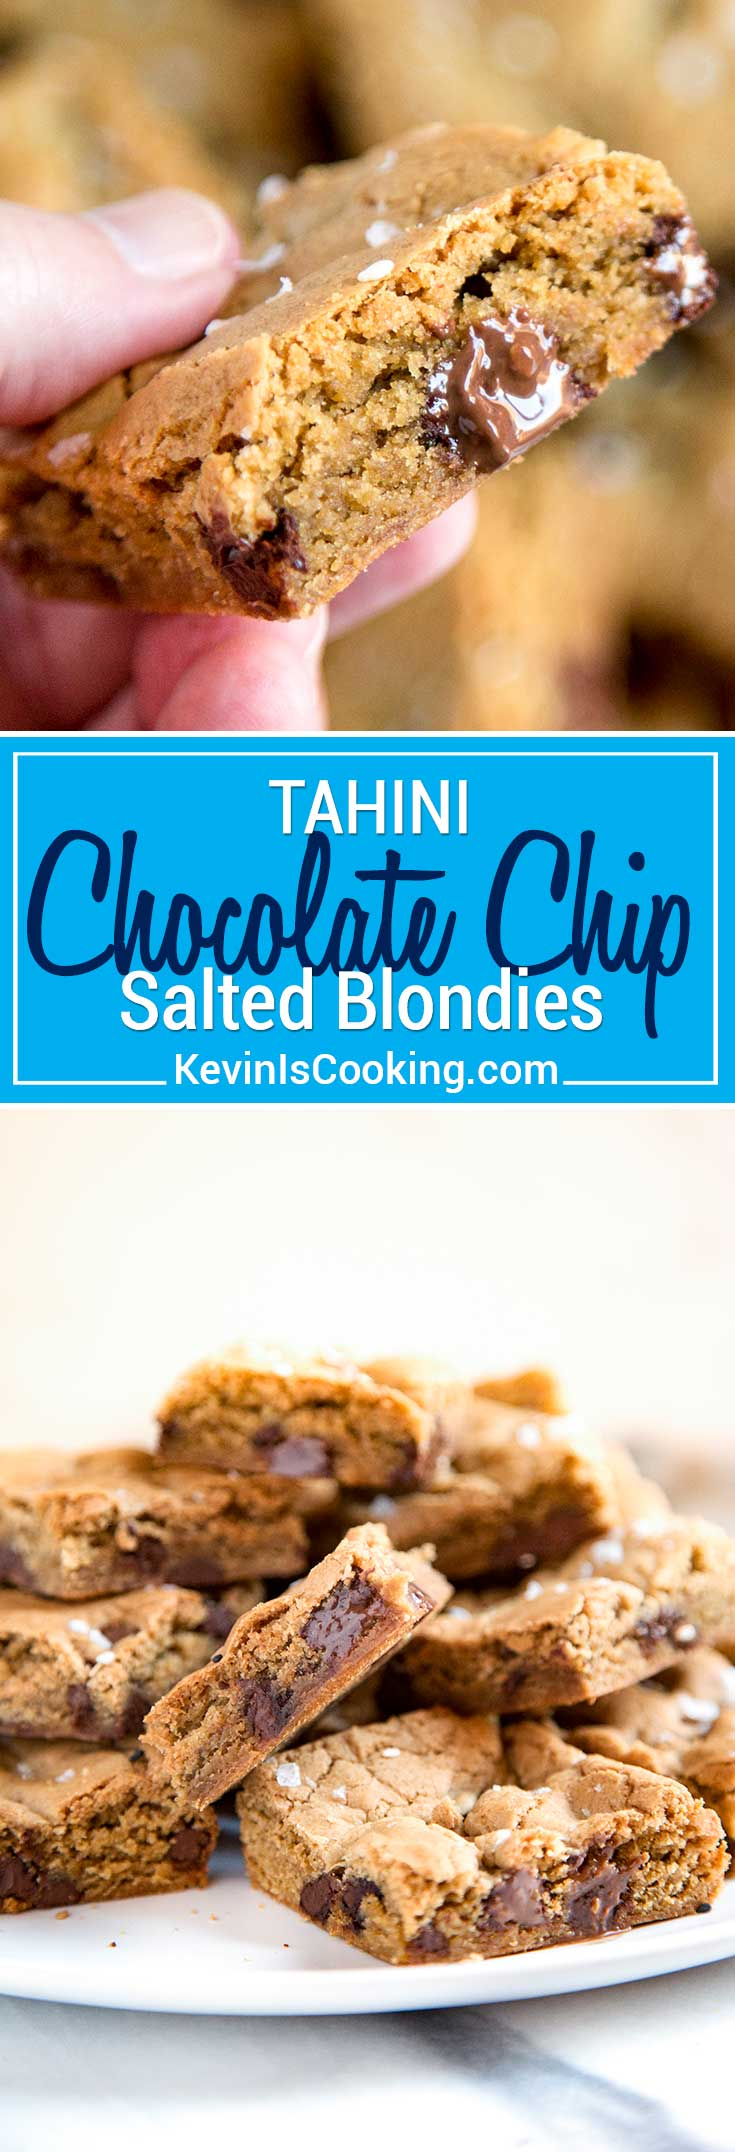 My Tahini Blondies get an update using tahini, which adds a nutty richness and elevates the average blondie to a sophisticated and tasty dessert bar.